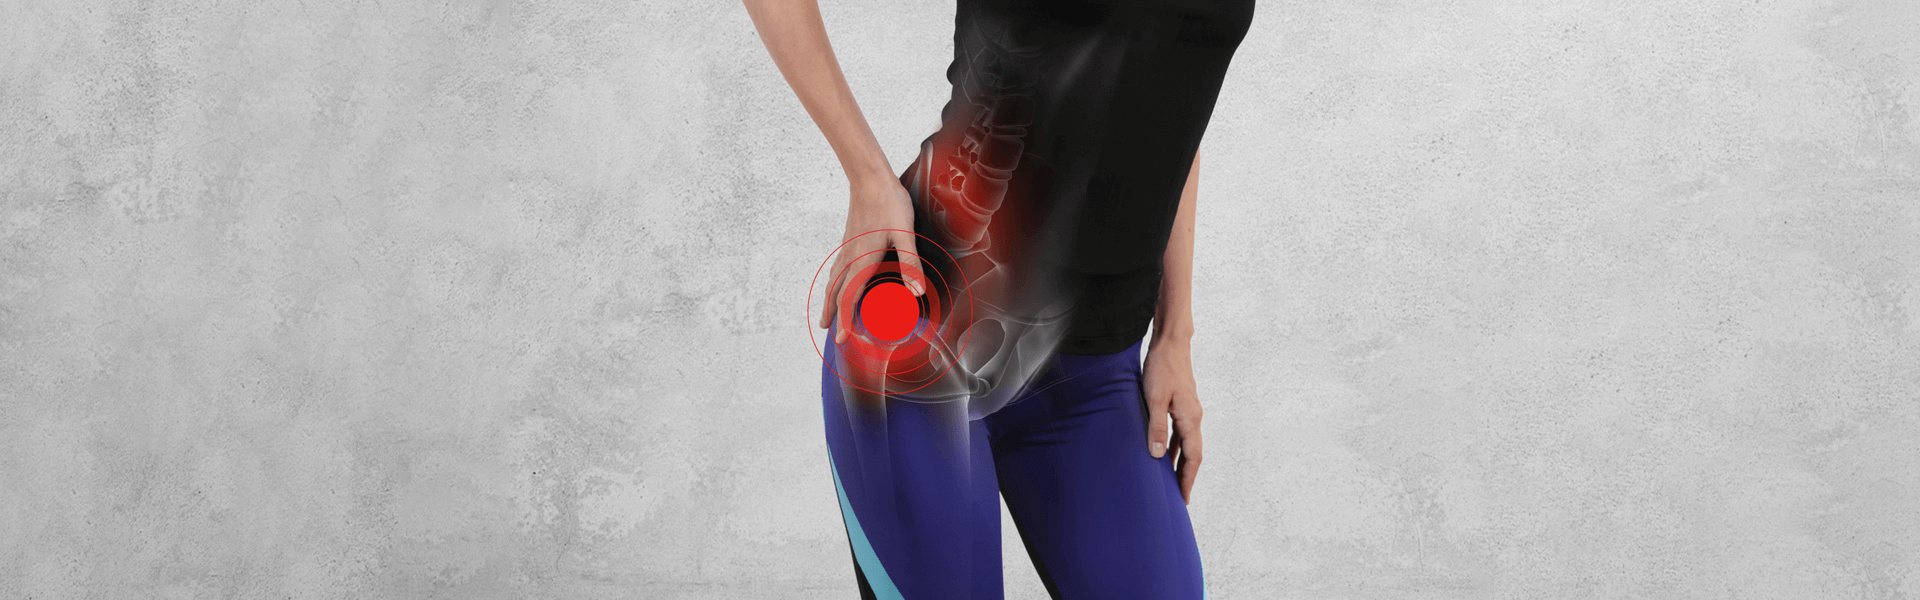 Hip Joint Dislocation: Causes, Types, and Treatment Options